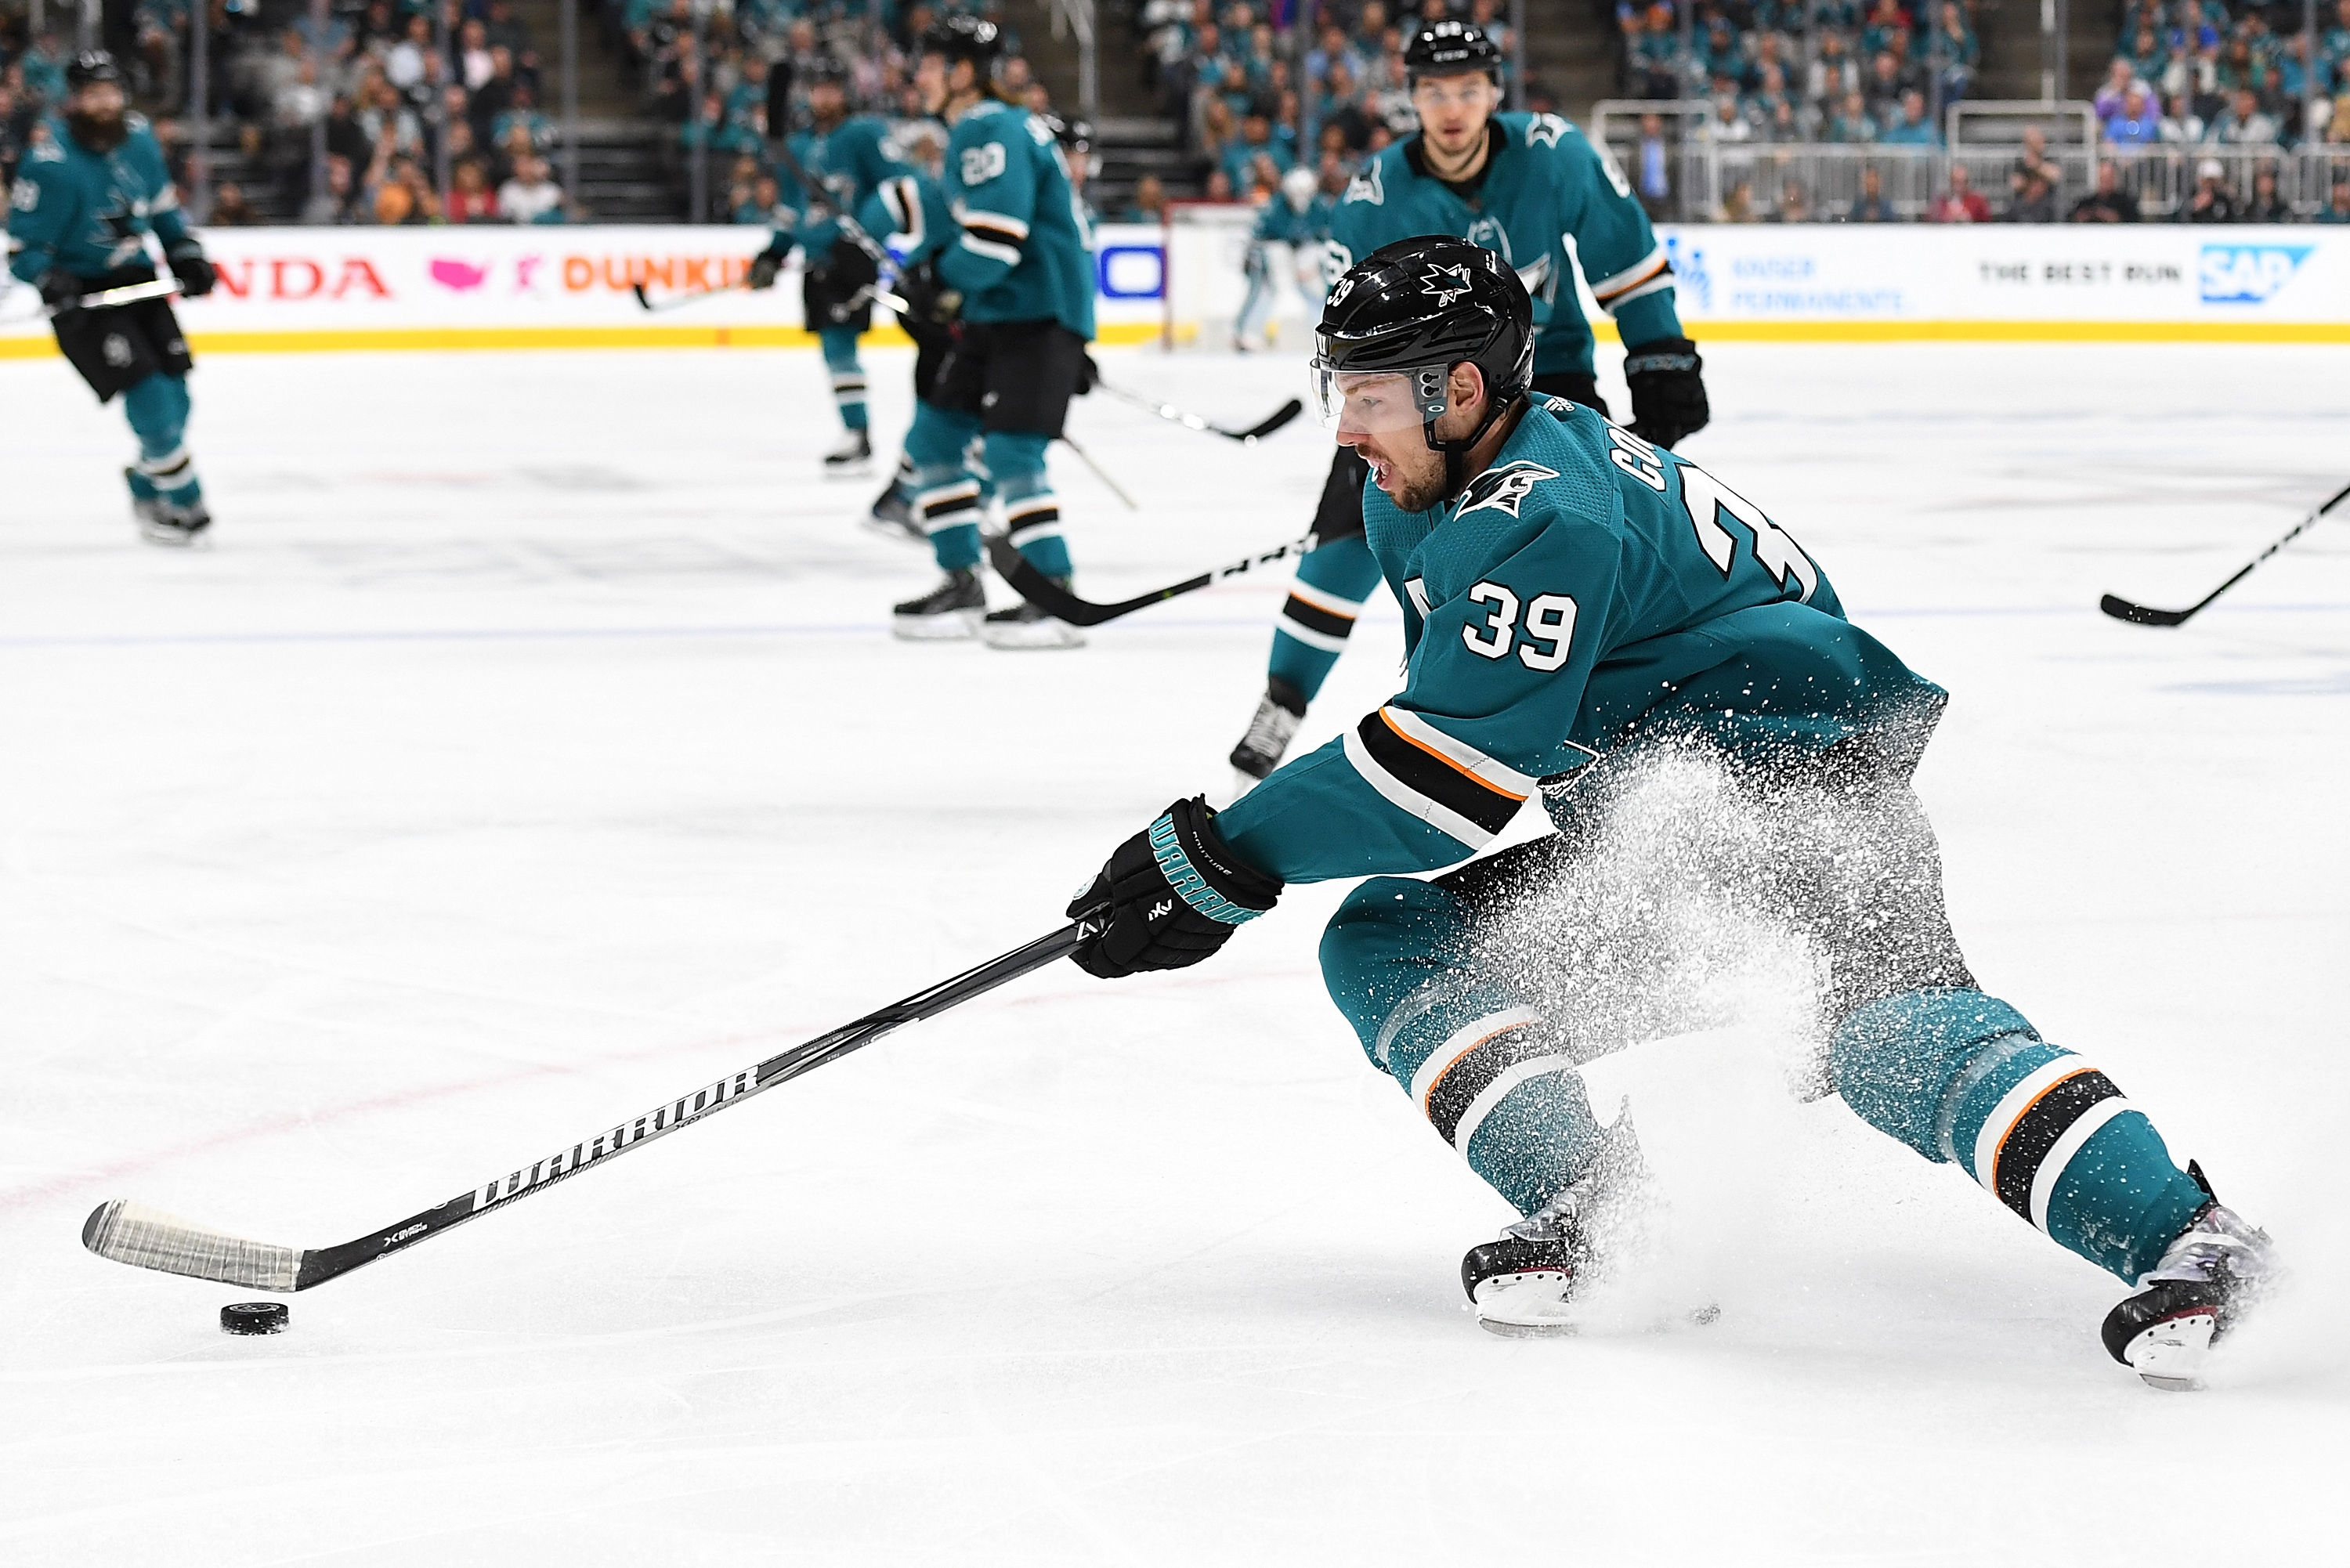 Logan couture clipart svg black and white Logan Couture, Sharks Win Western Conference Final Game 1 6-3 vs ... svg black and white